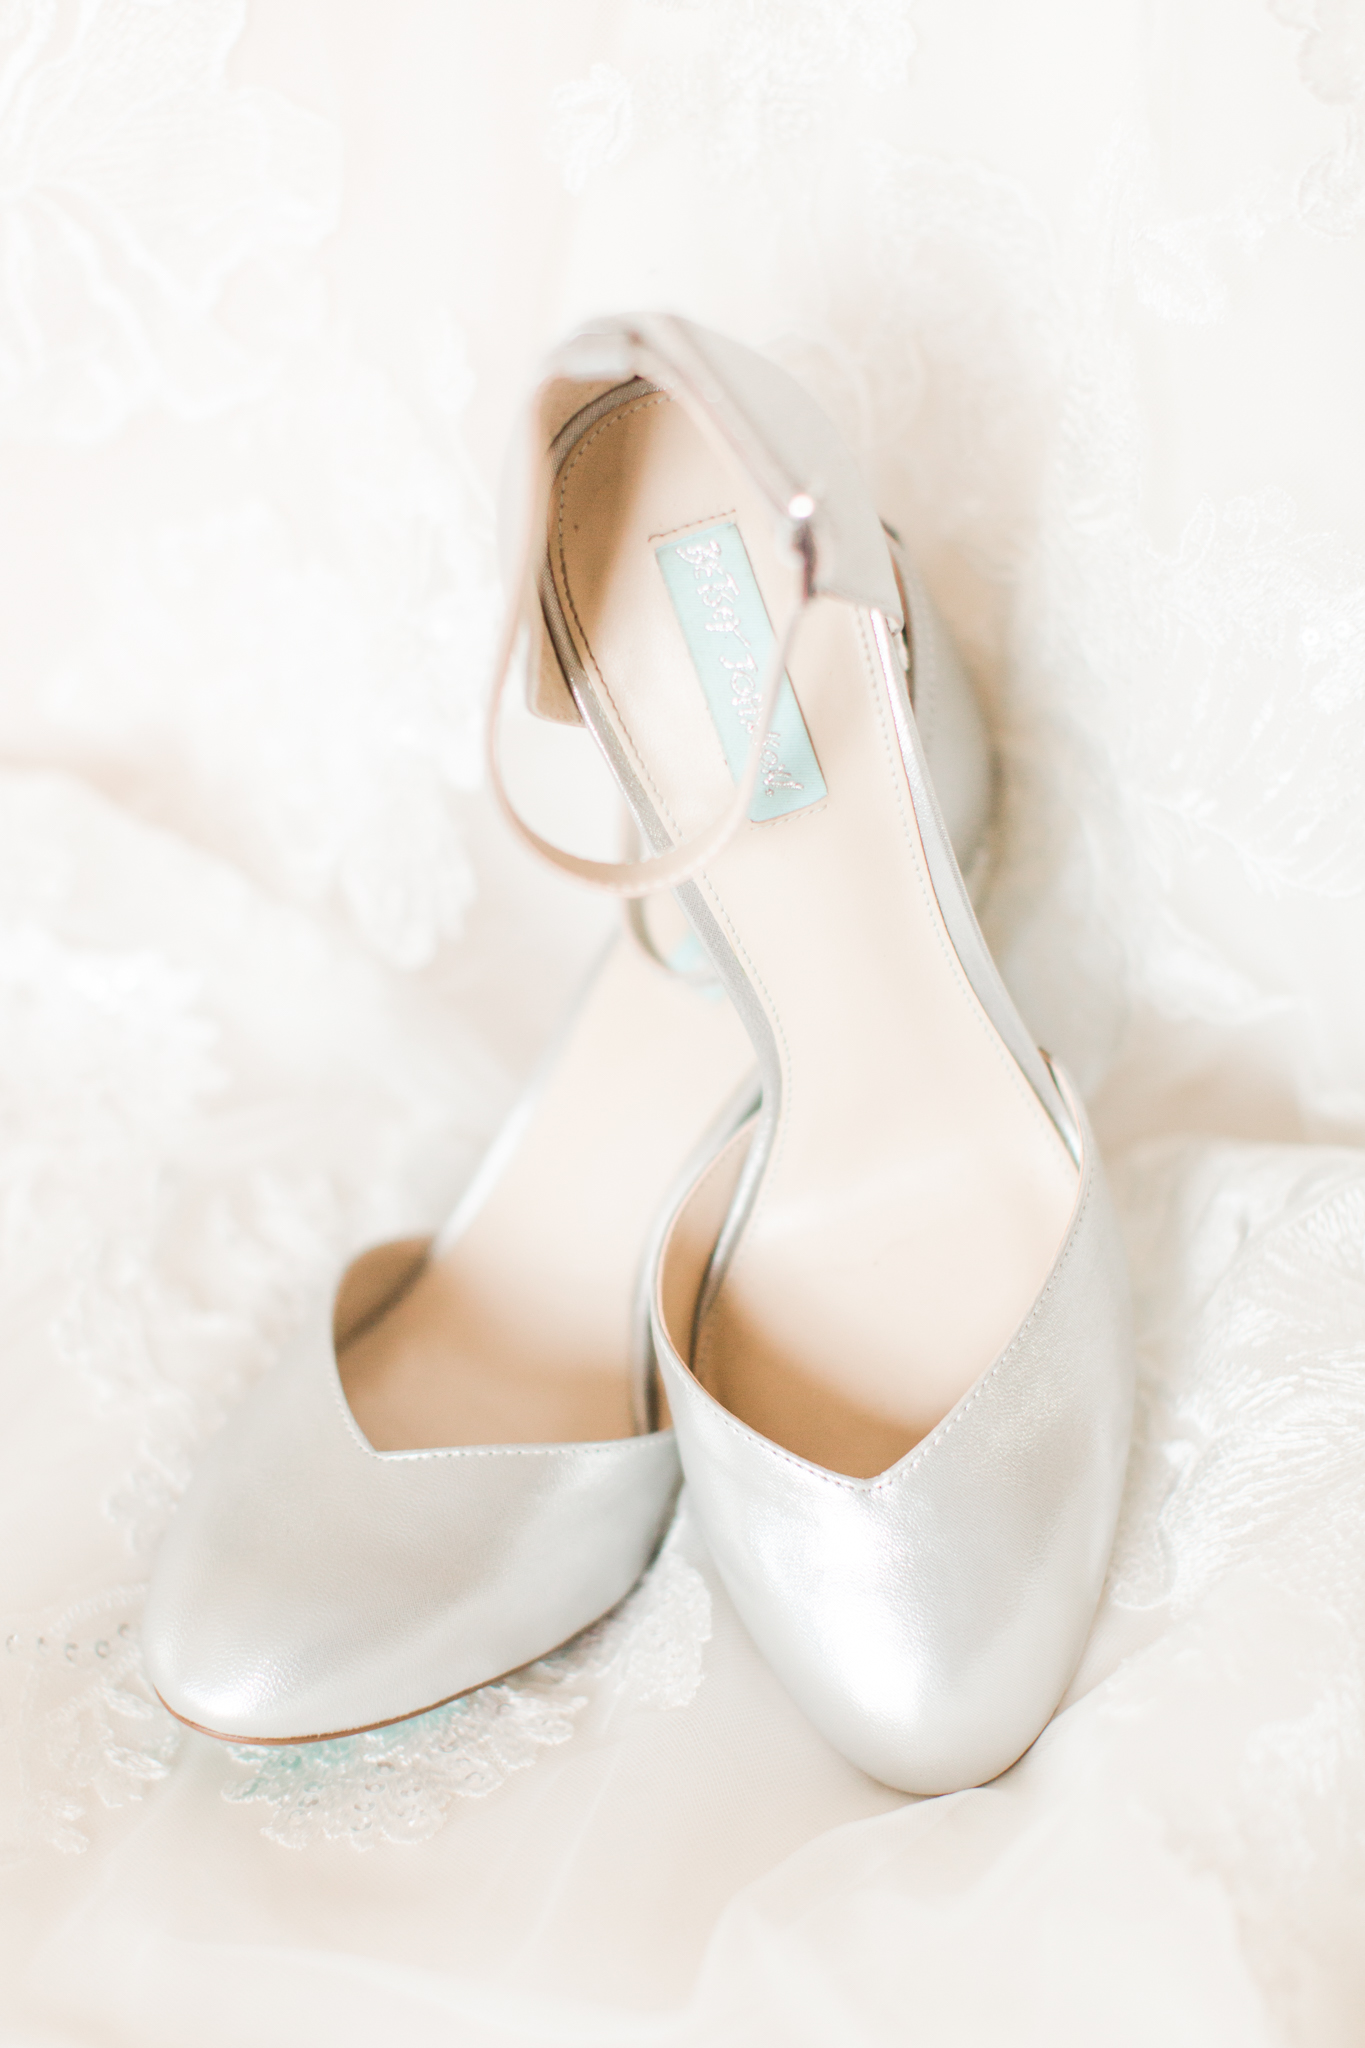 Bride's silver close toe shoe's perfect for a winter wedding in New England - Pearl Weddings & Events